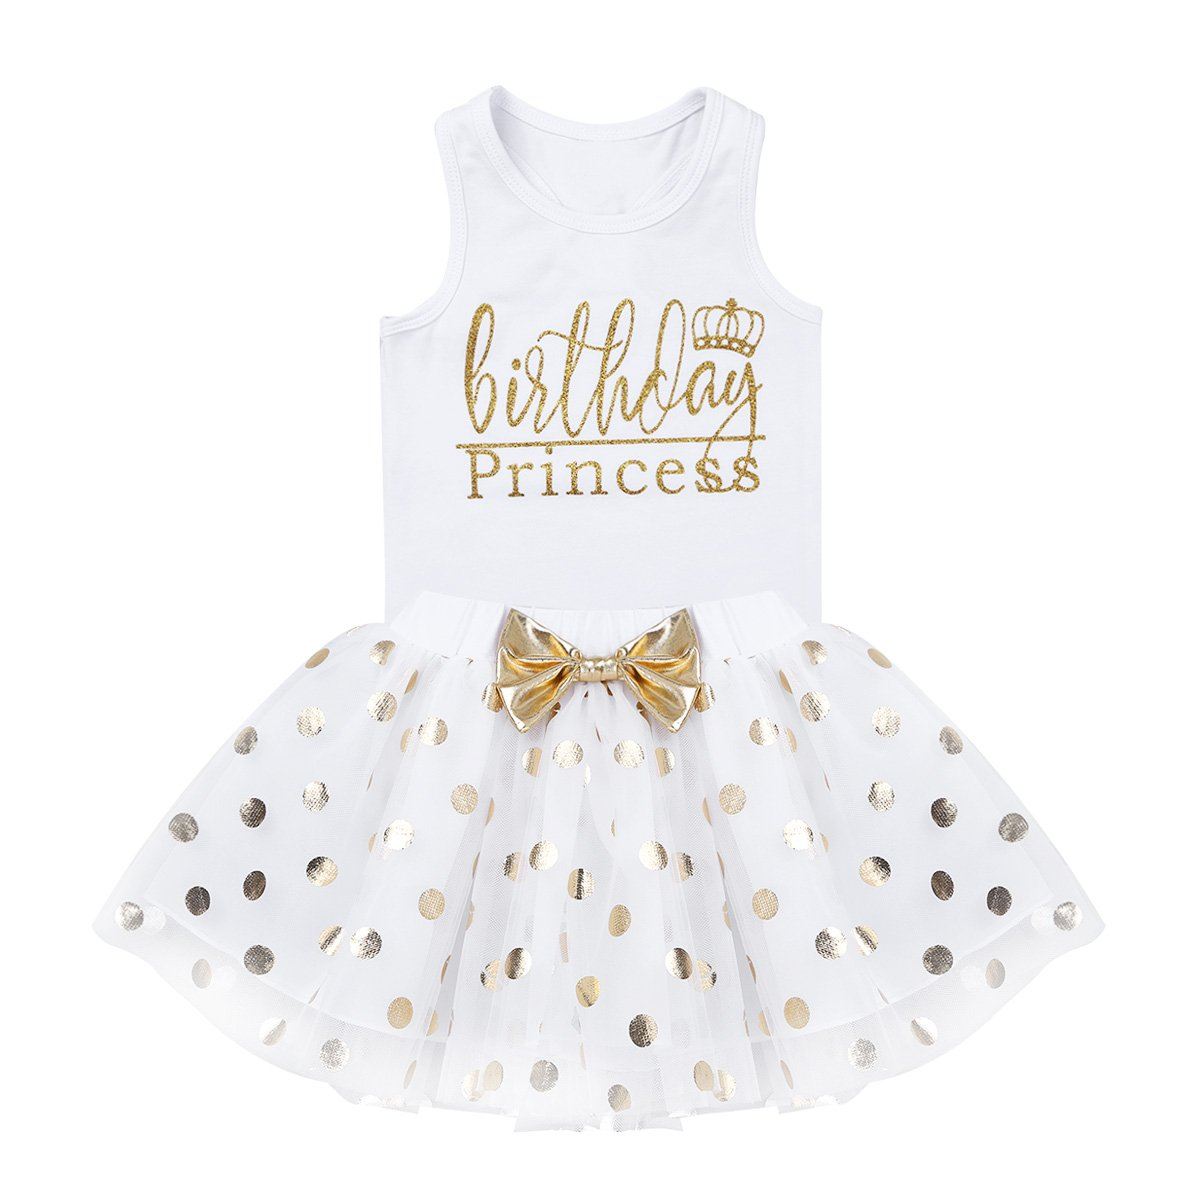 dPois Little Princess Girls' First Birthday Outfits Glittery Monogram Tank Top with Polka Dot Skirts 2 Pieces Set White 4-5 by dPois (Image #5)